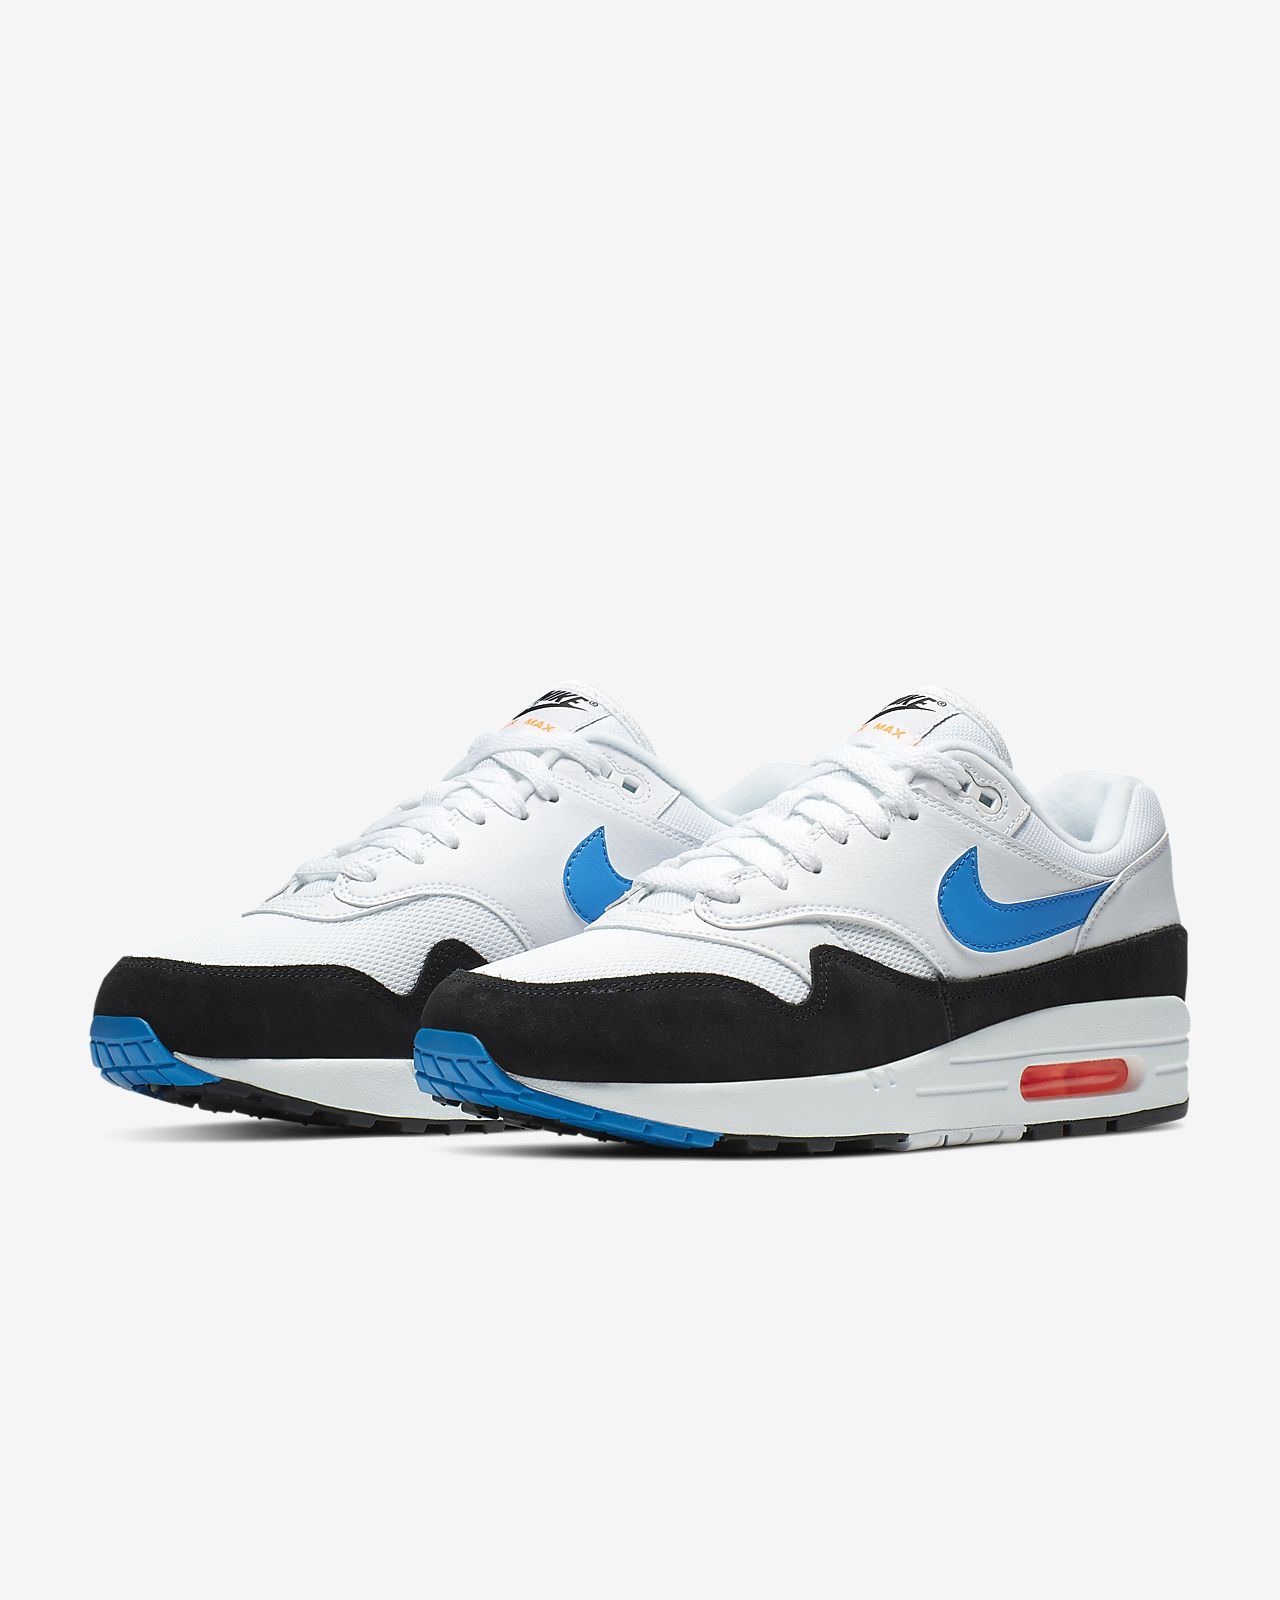 e0d0ecfefbb552 Low Resolution Nike Air Max 1 Men s Shoe Nike Air Max 1 Men s Shoe